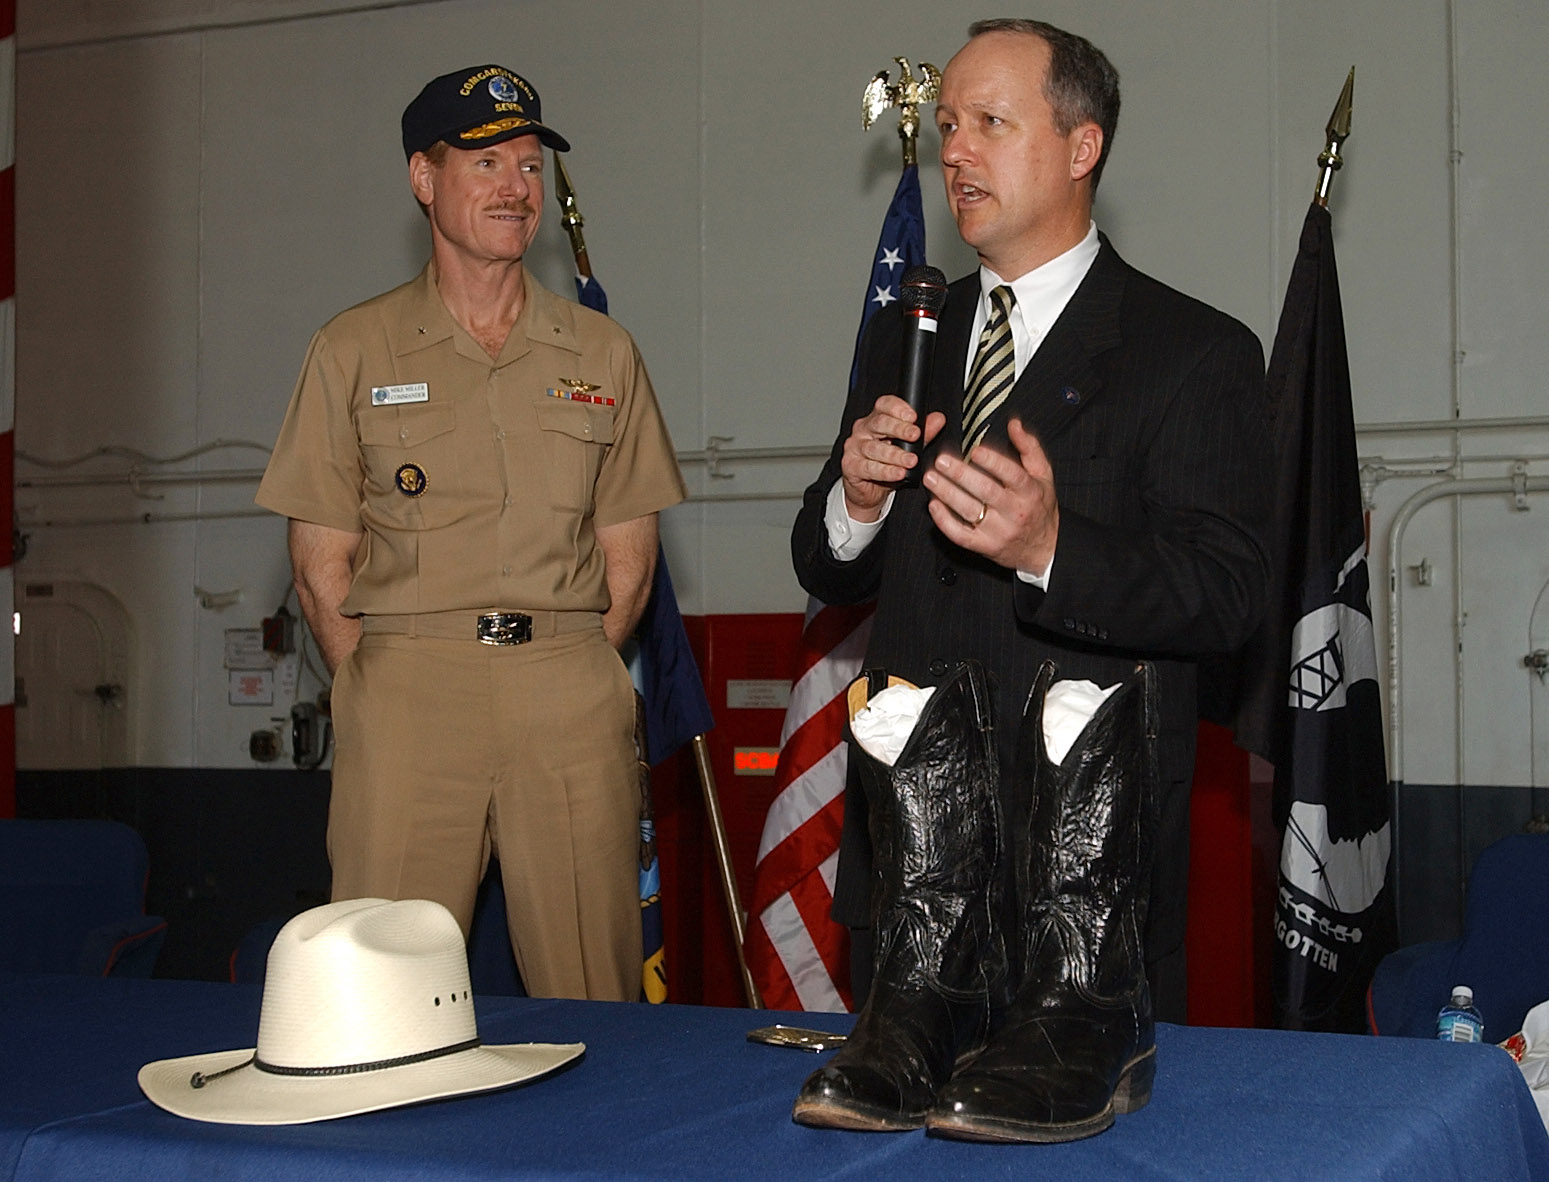 File:US Navy 051221-N-2532P-030 Executive Director of the